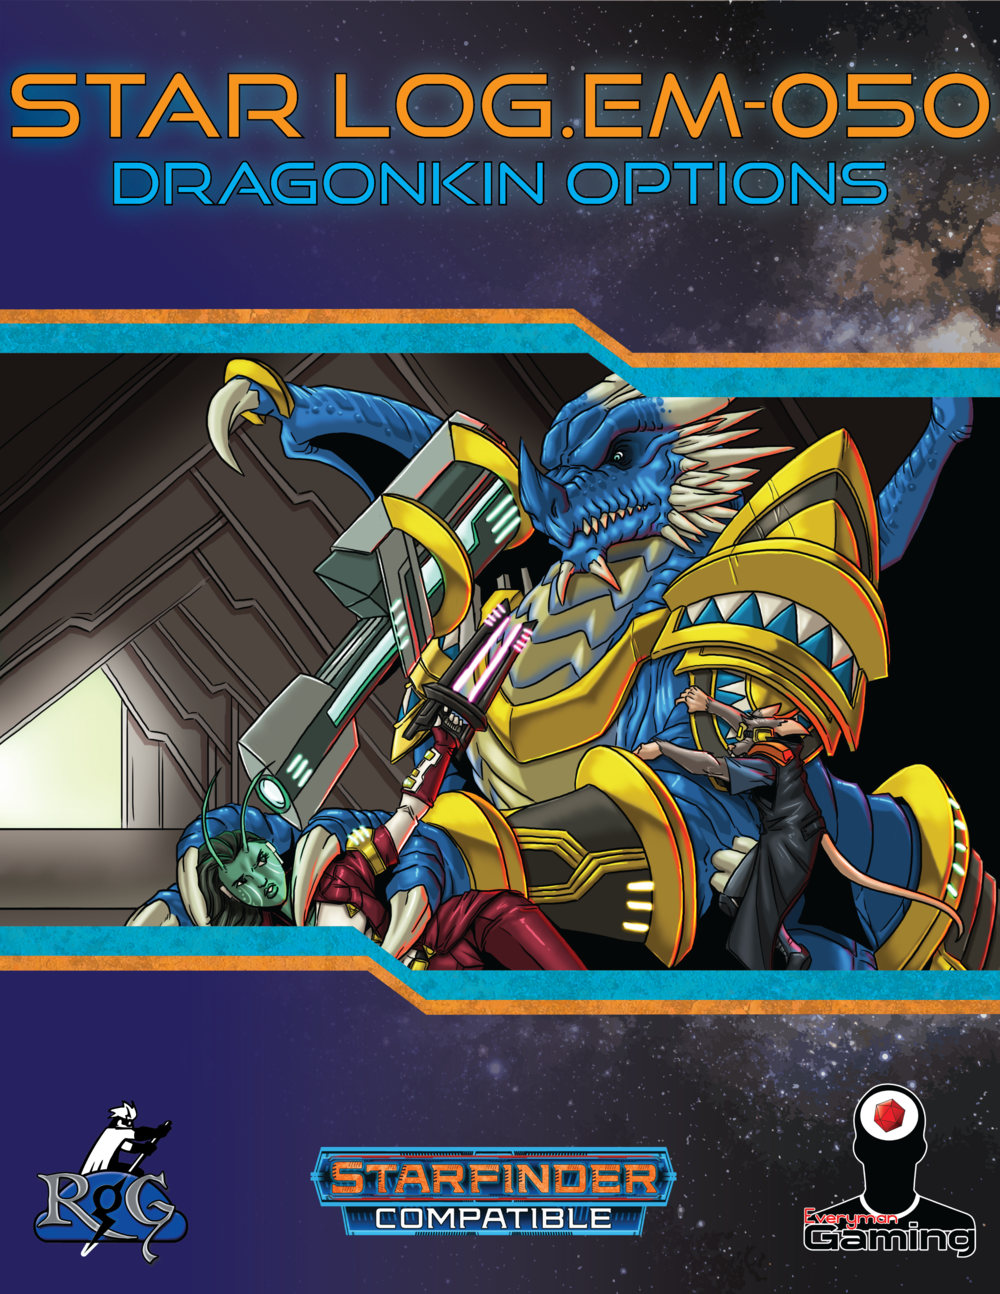 SF049 Dragonkin Options-01.png